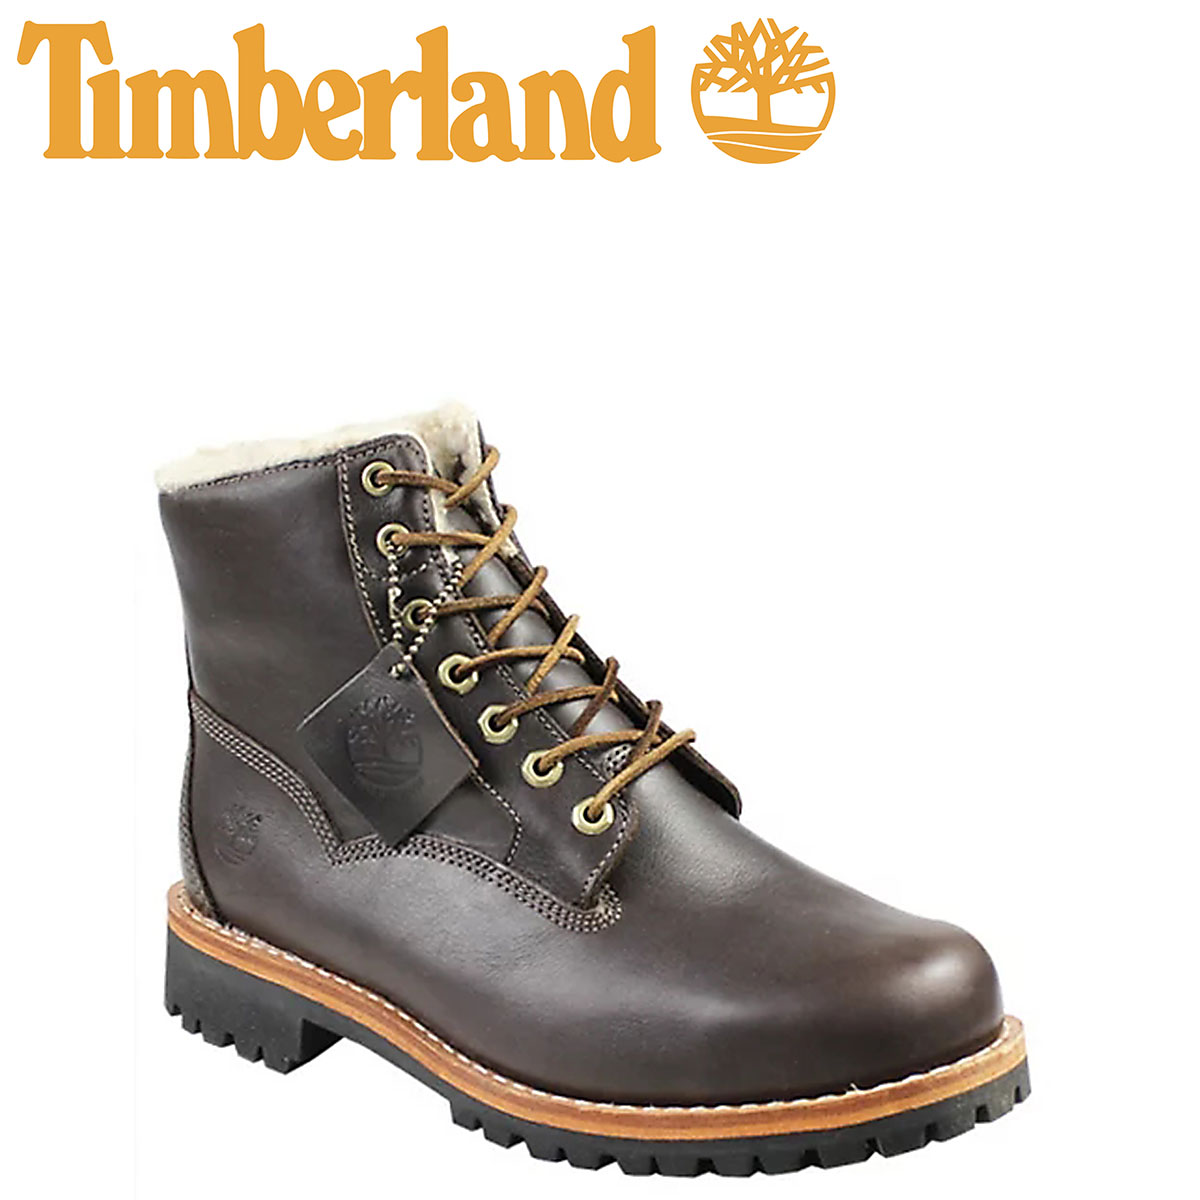 Sugar Online Shop | Rakuten Global Market: Point 2 x Timberland Timberland  heritage waterproof bomber boots WATERPROOF BOMBER BOOTS HERITAGE leather  men\u0027s ...